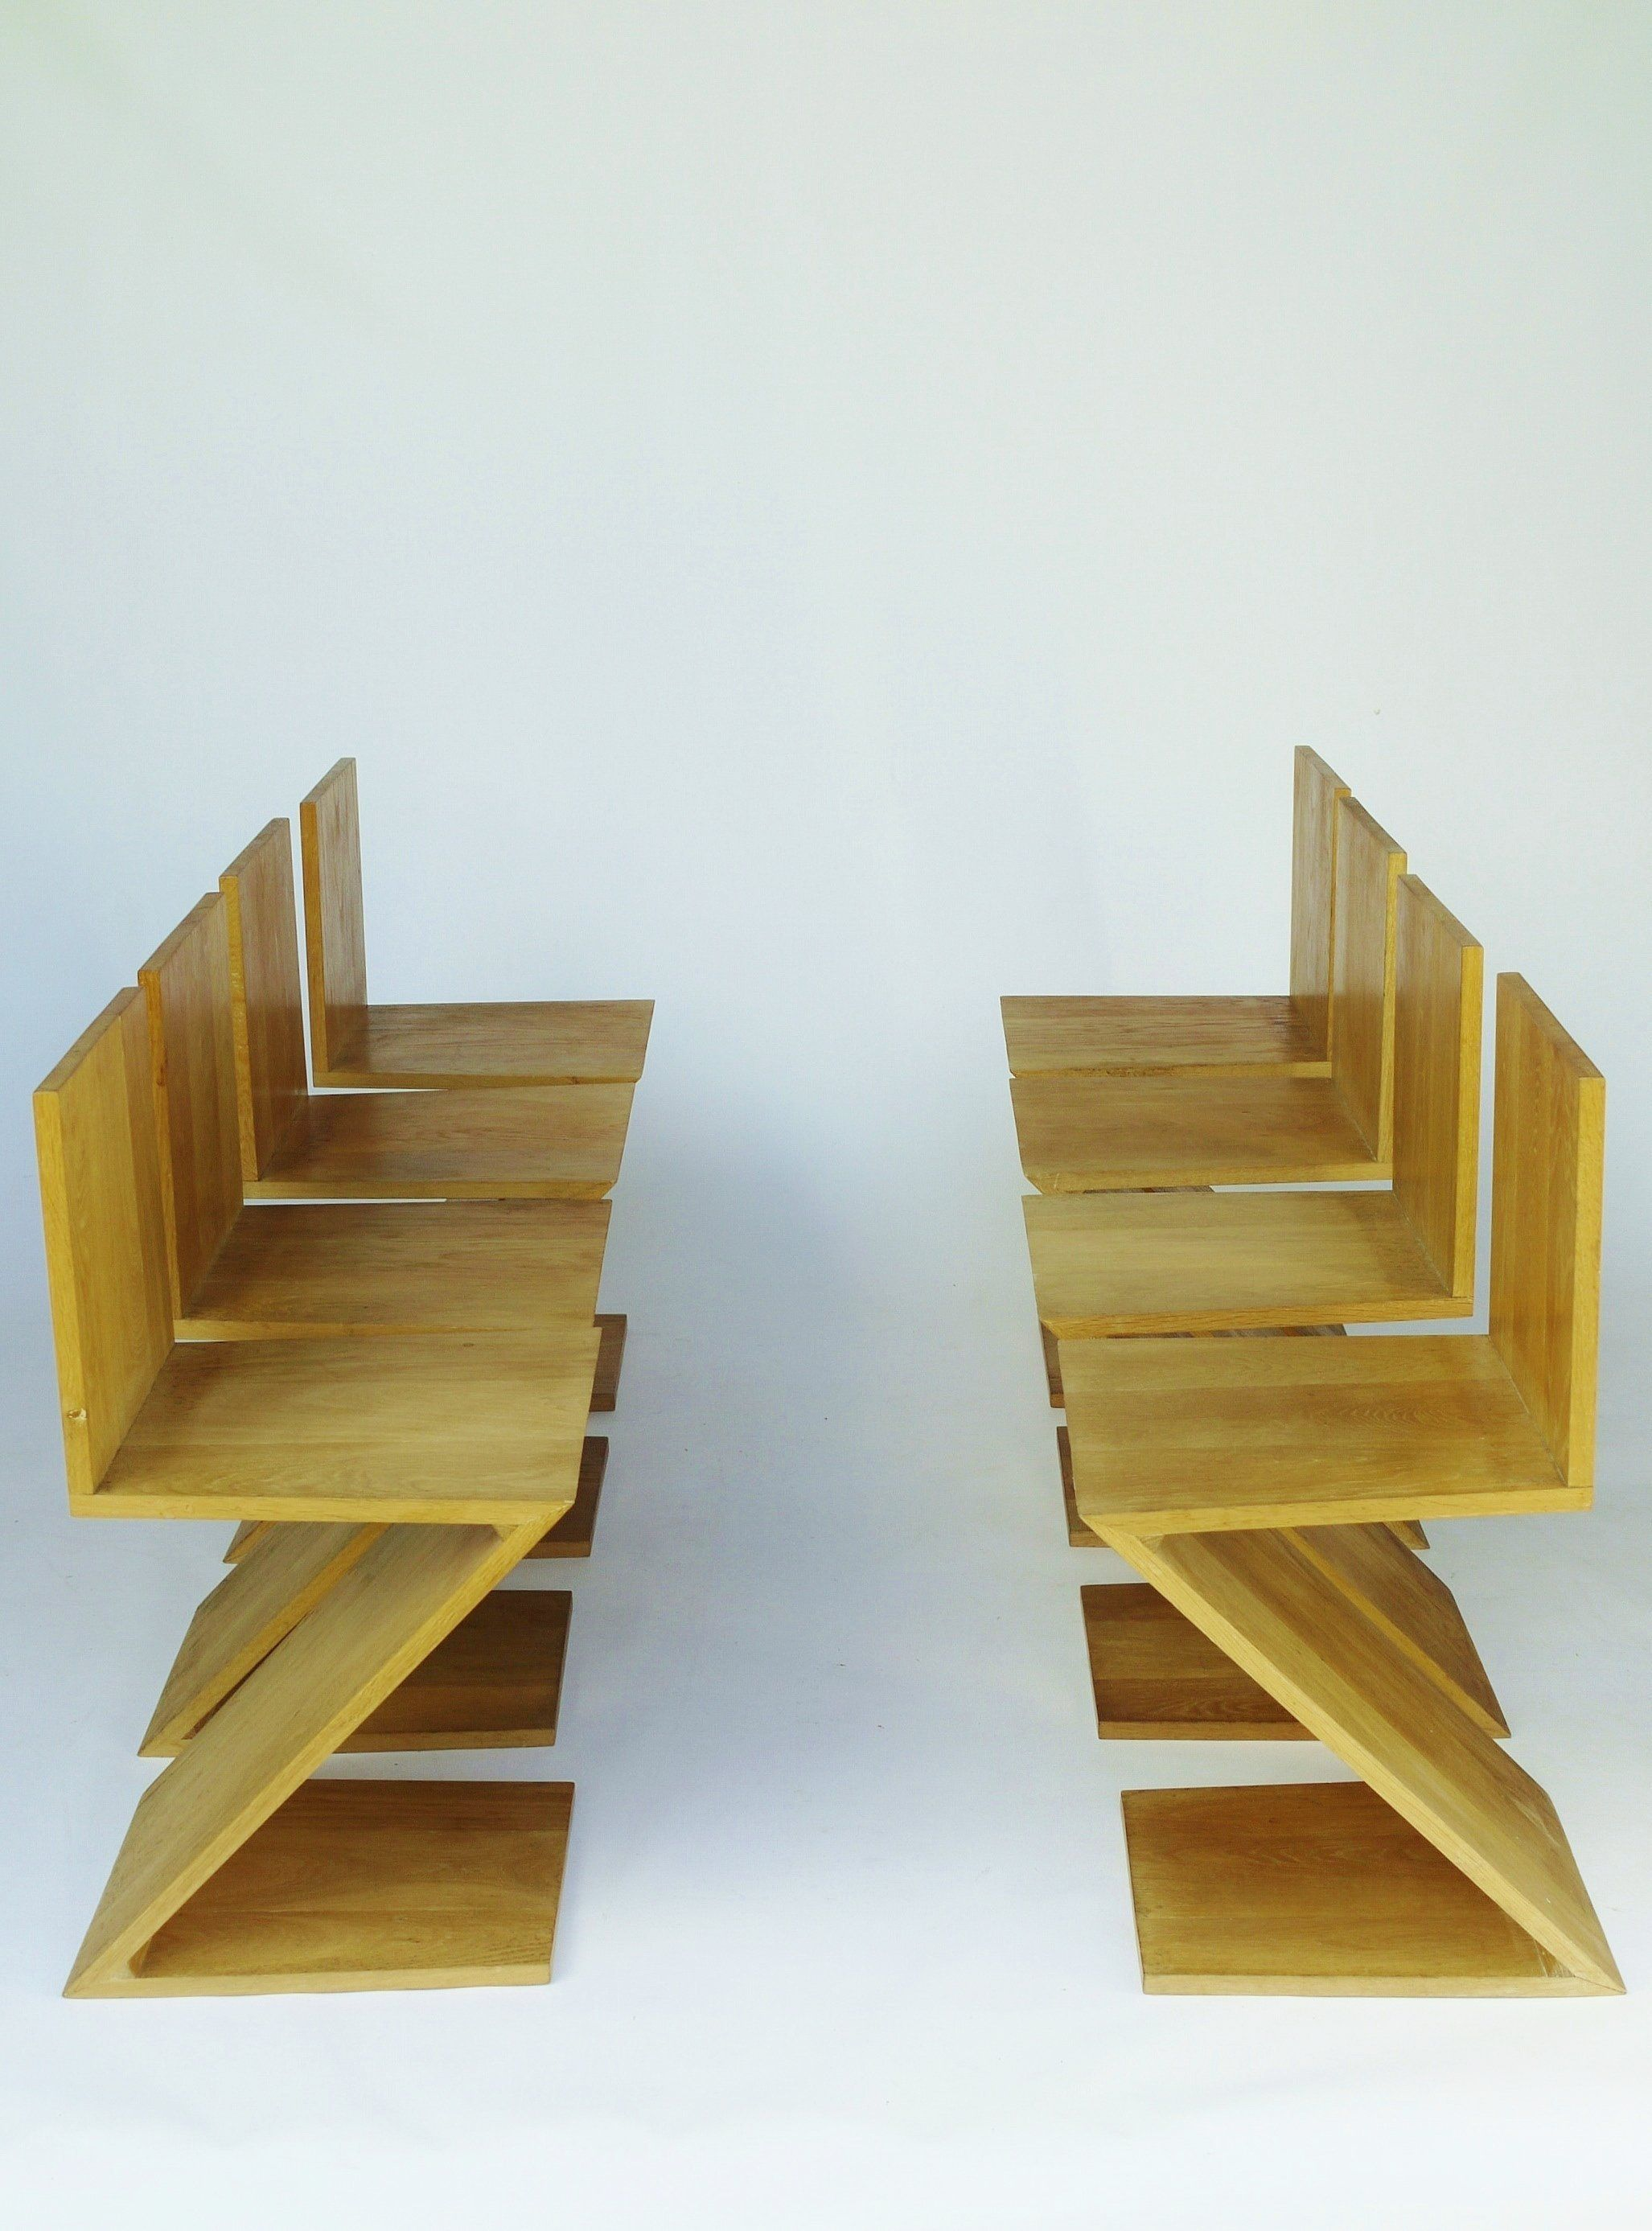 Gerrit rietveld chair for sale - Oak Chairs By Gerrit Rietveld